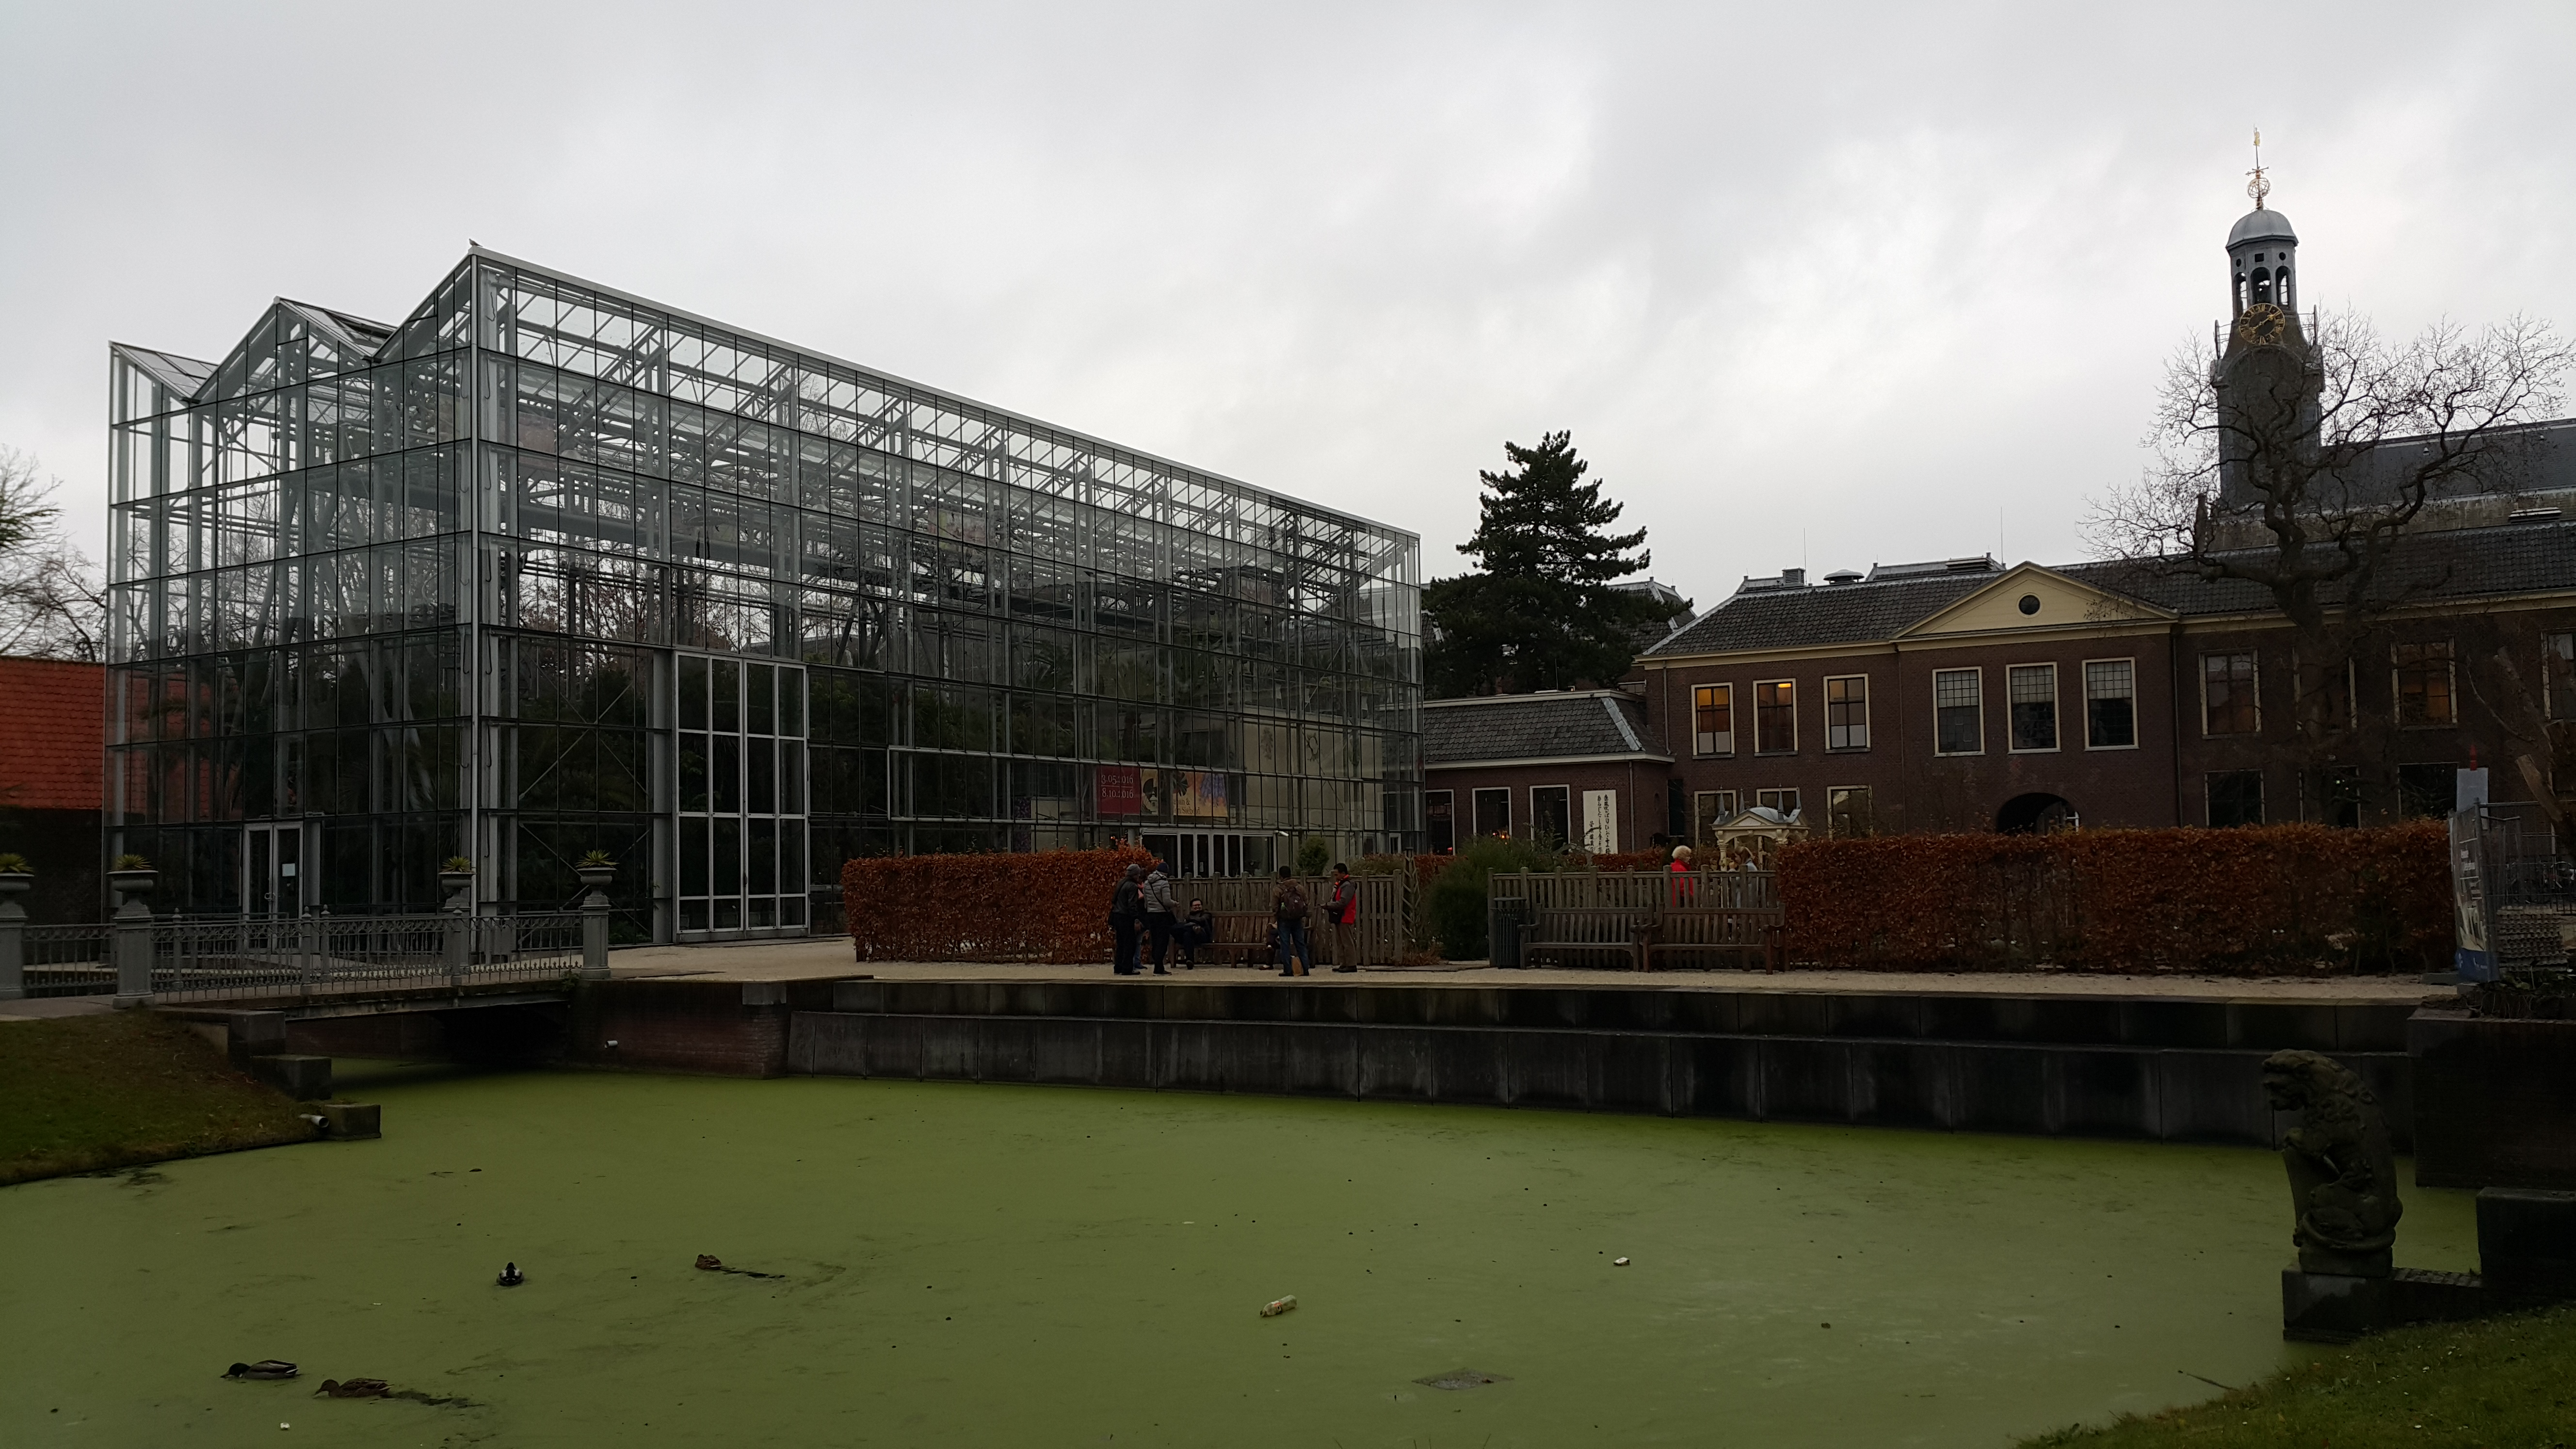 Glasshouse (dok.bhermana)